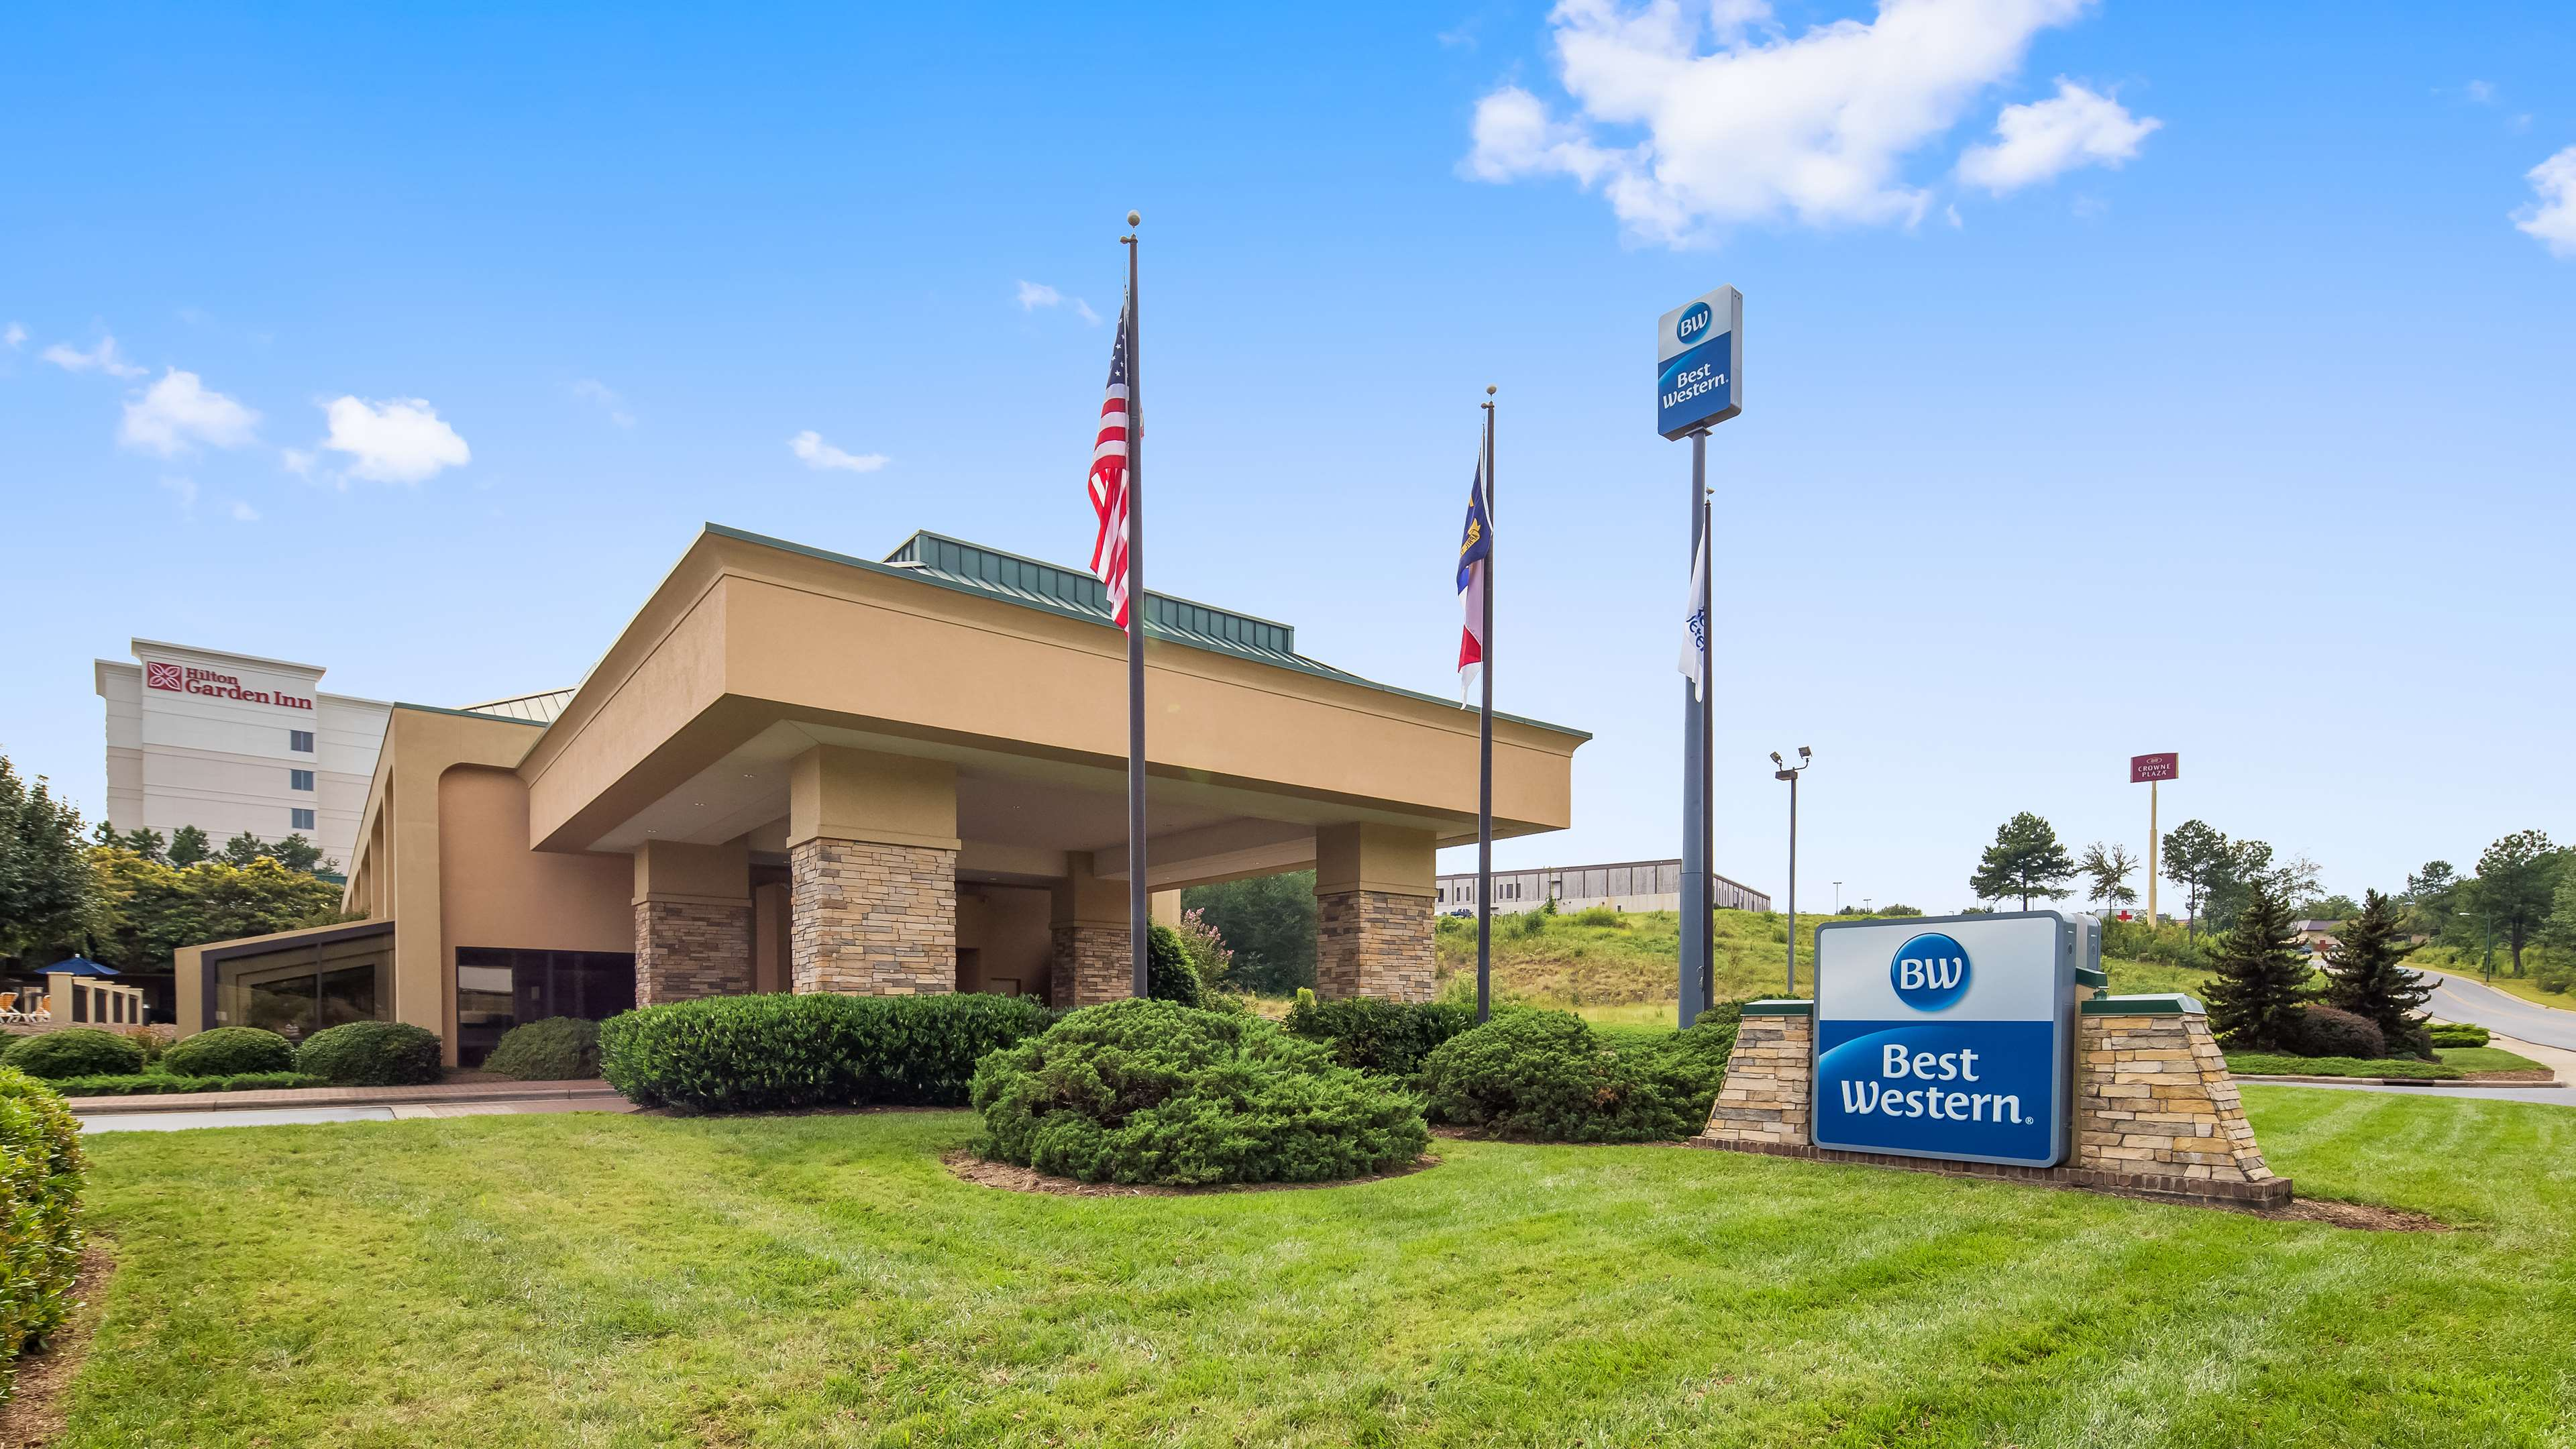 Best Western Hickory Hickory North Carolina Nc